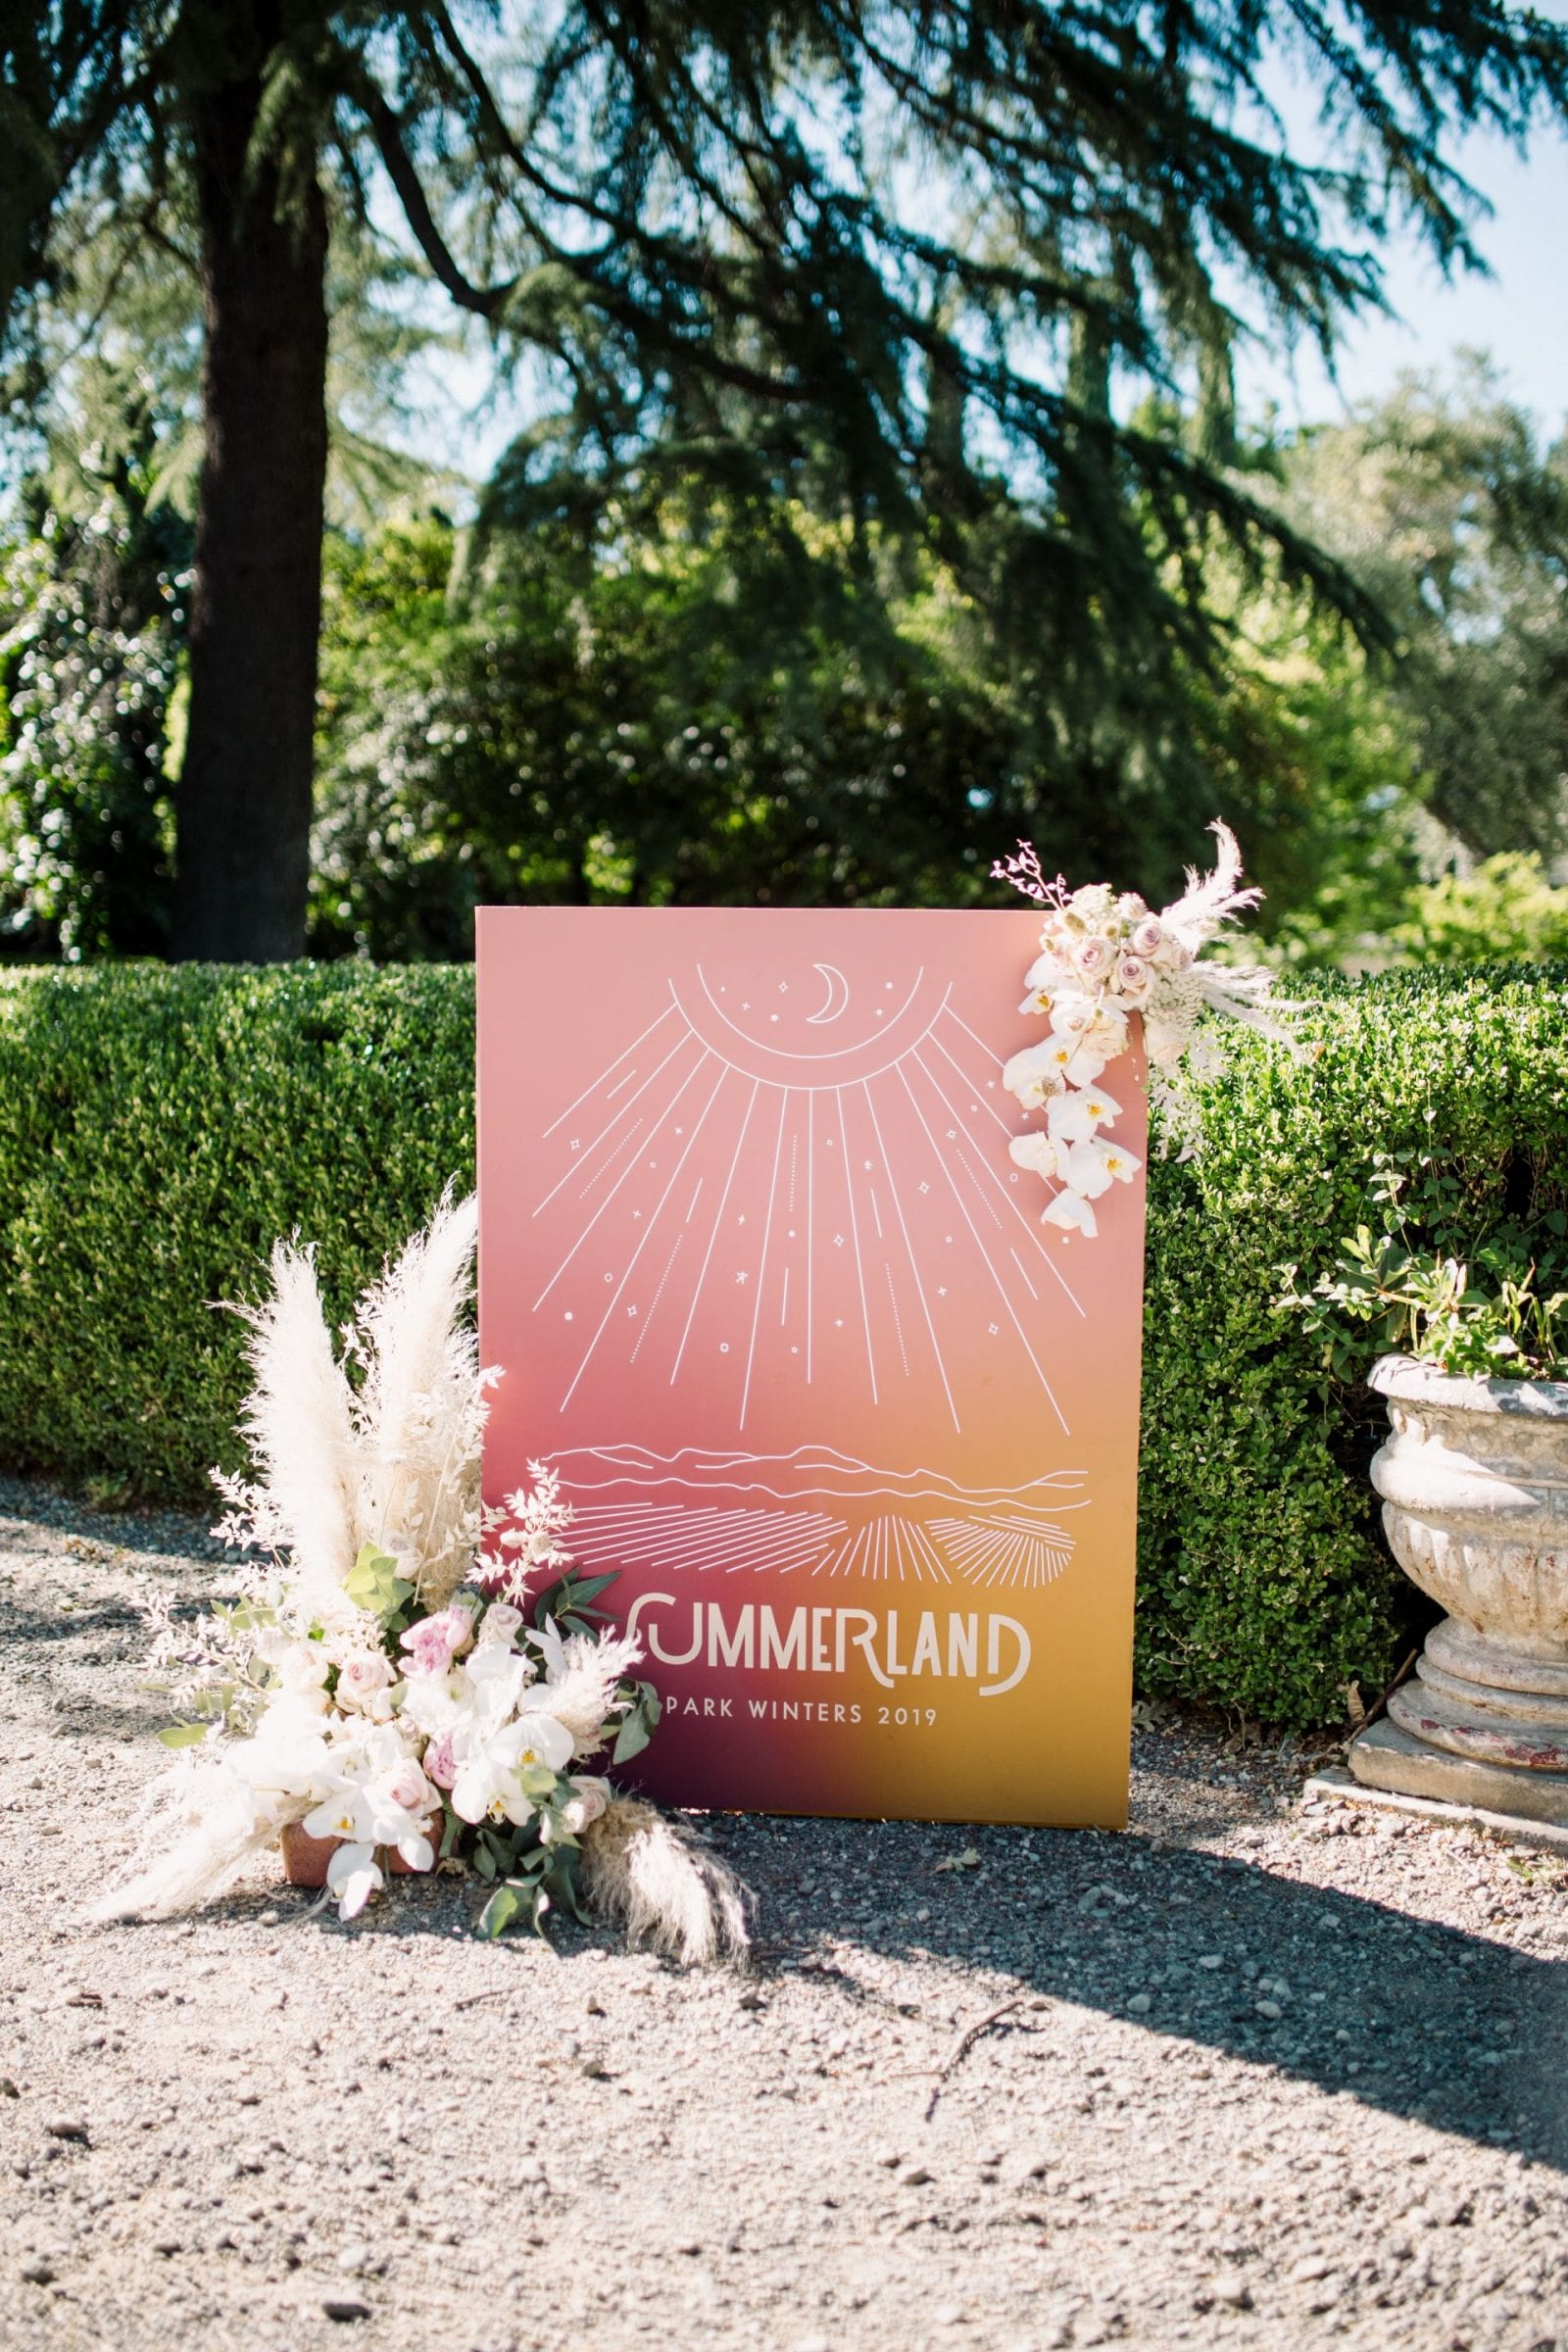 Park Winters Summerland 2019 | Northern California Wedding Event Venue | Summer Pool Party Inspiration | Floral Design | Graphic Design | Junerie Co | SarahMichiko.com